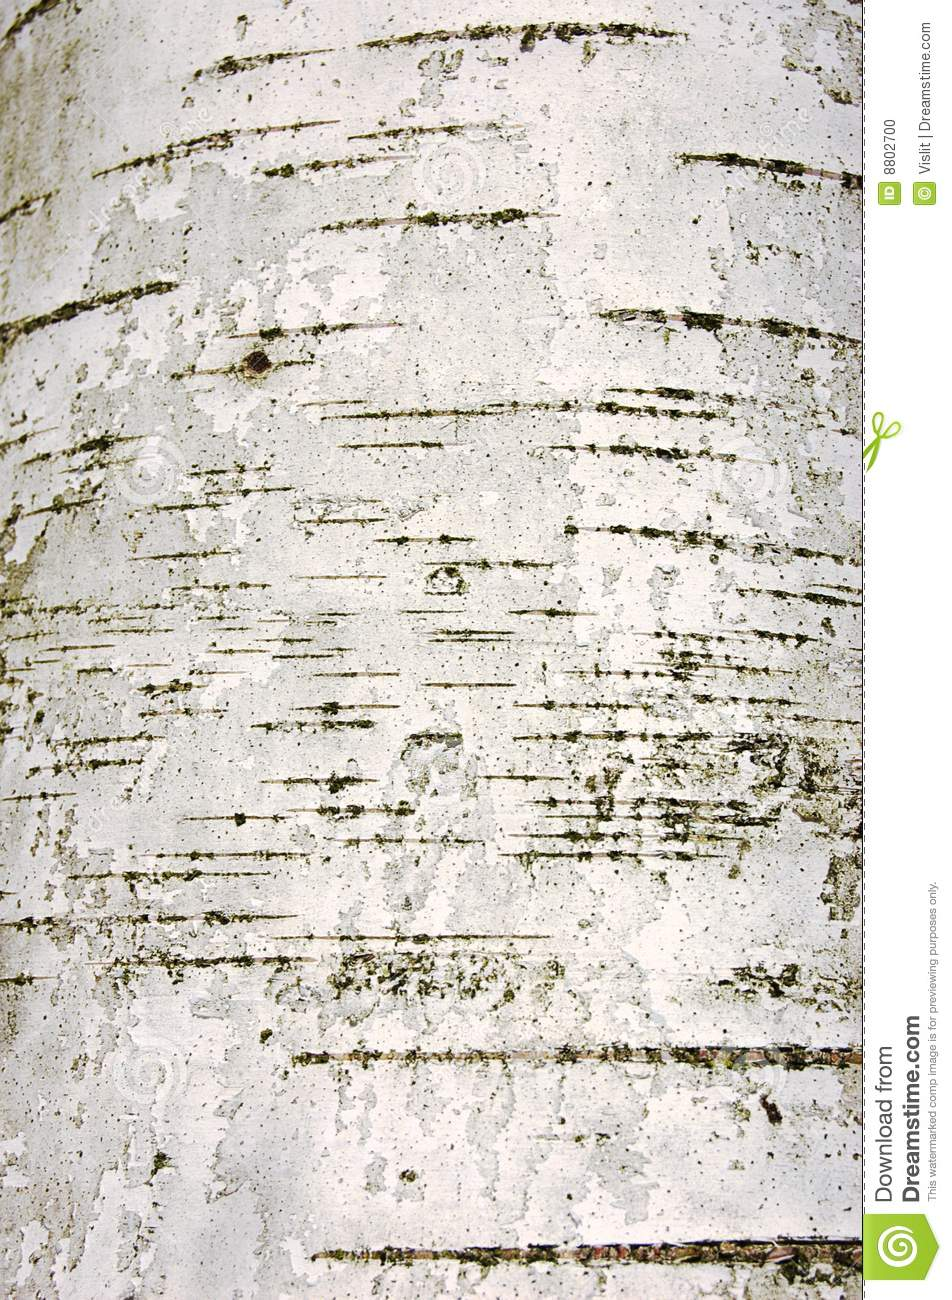 The young birch bark texture white with black cracks.